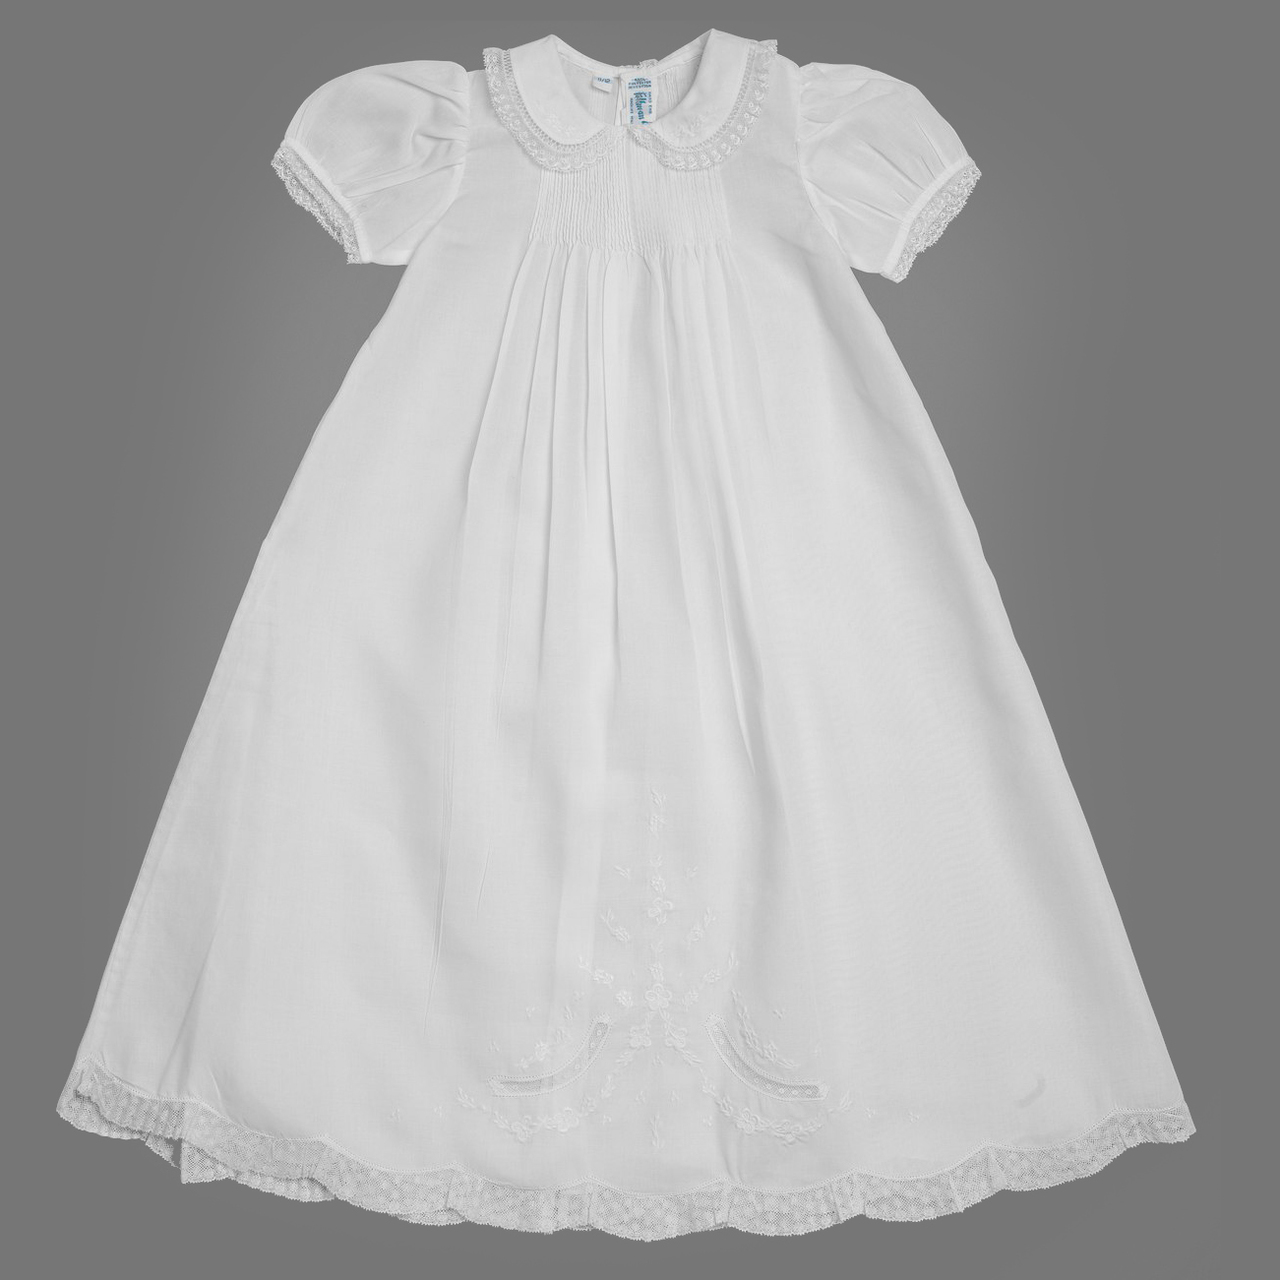 3eff38e67 Girls Ruffle Lace Collar Special Occasion Gown Set | Feltman Brothers